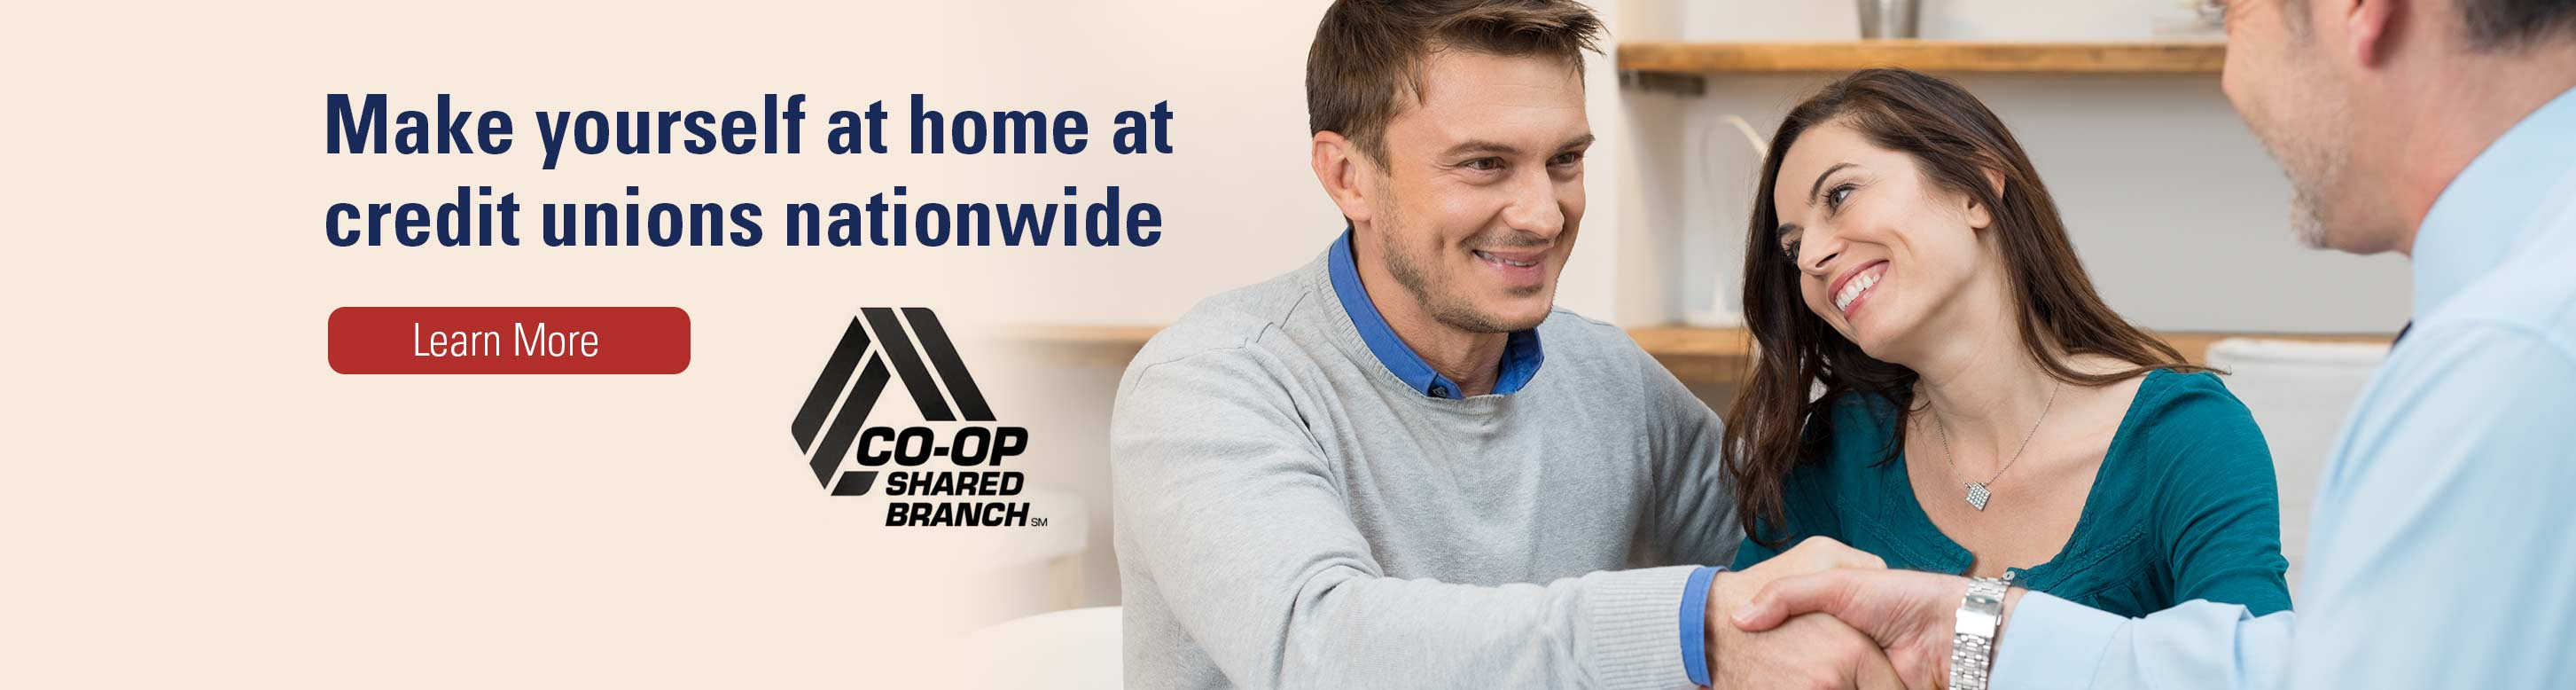 Make yourself at home at credit unions available nationwide. Learn more. Co-op shared branch.